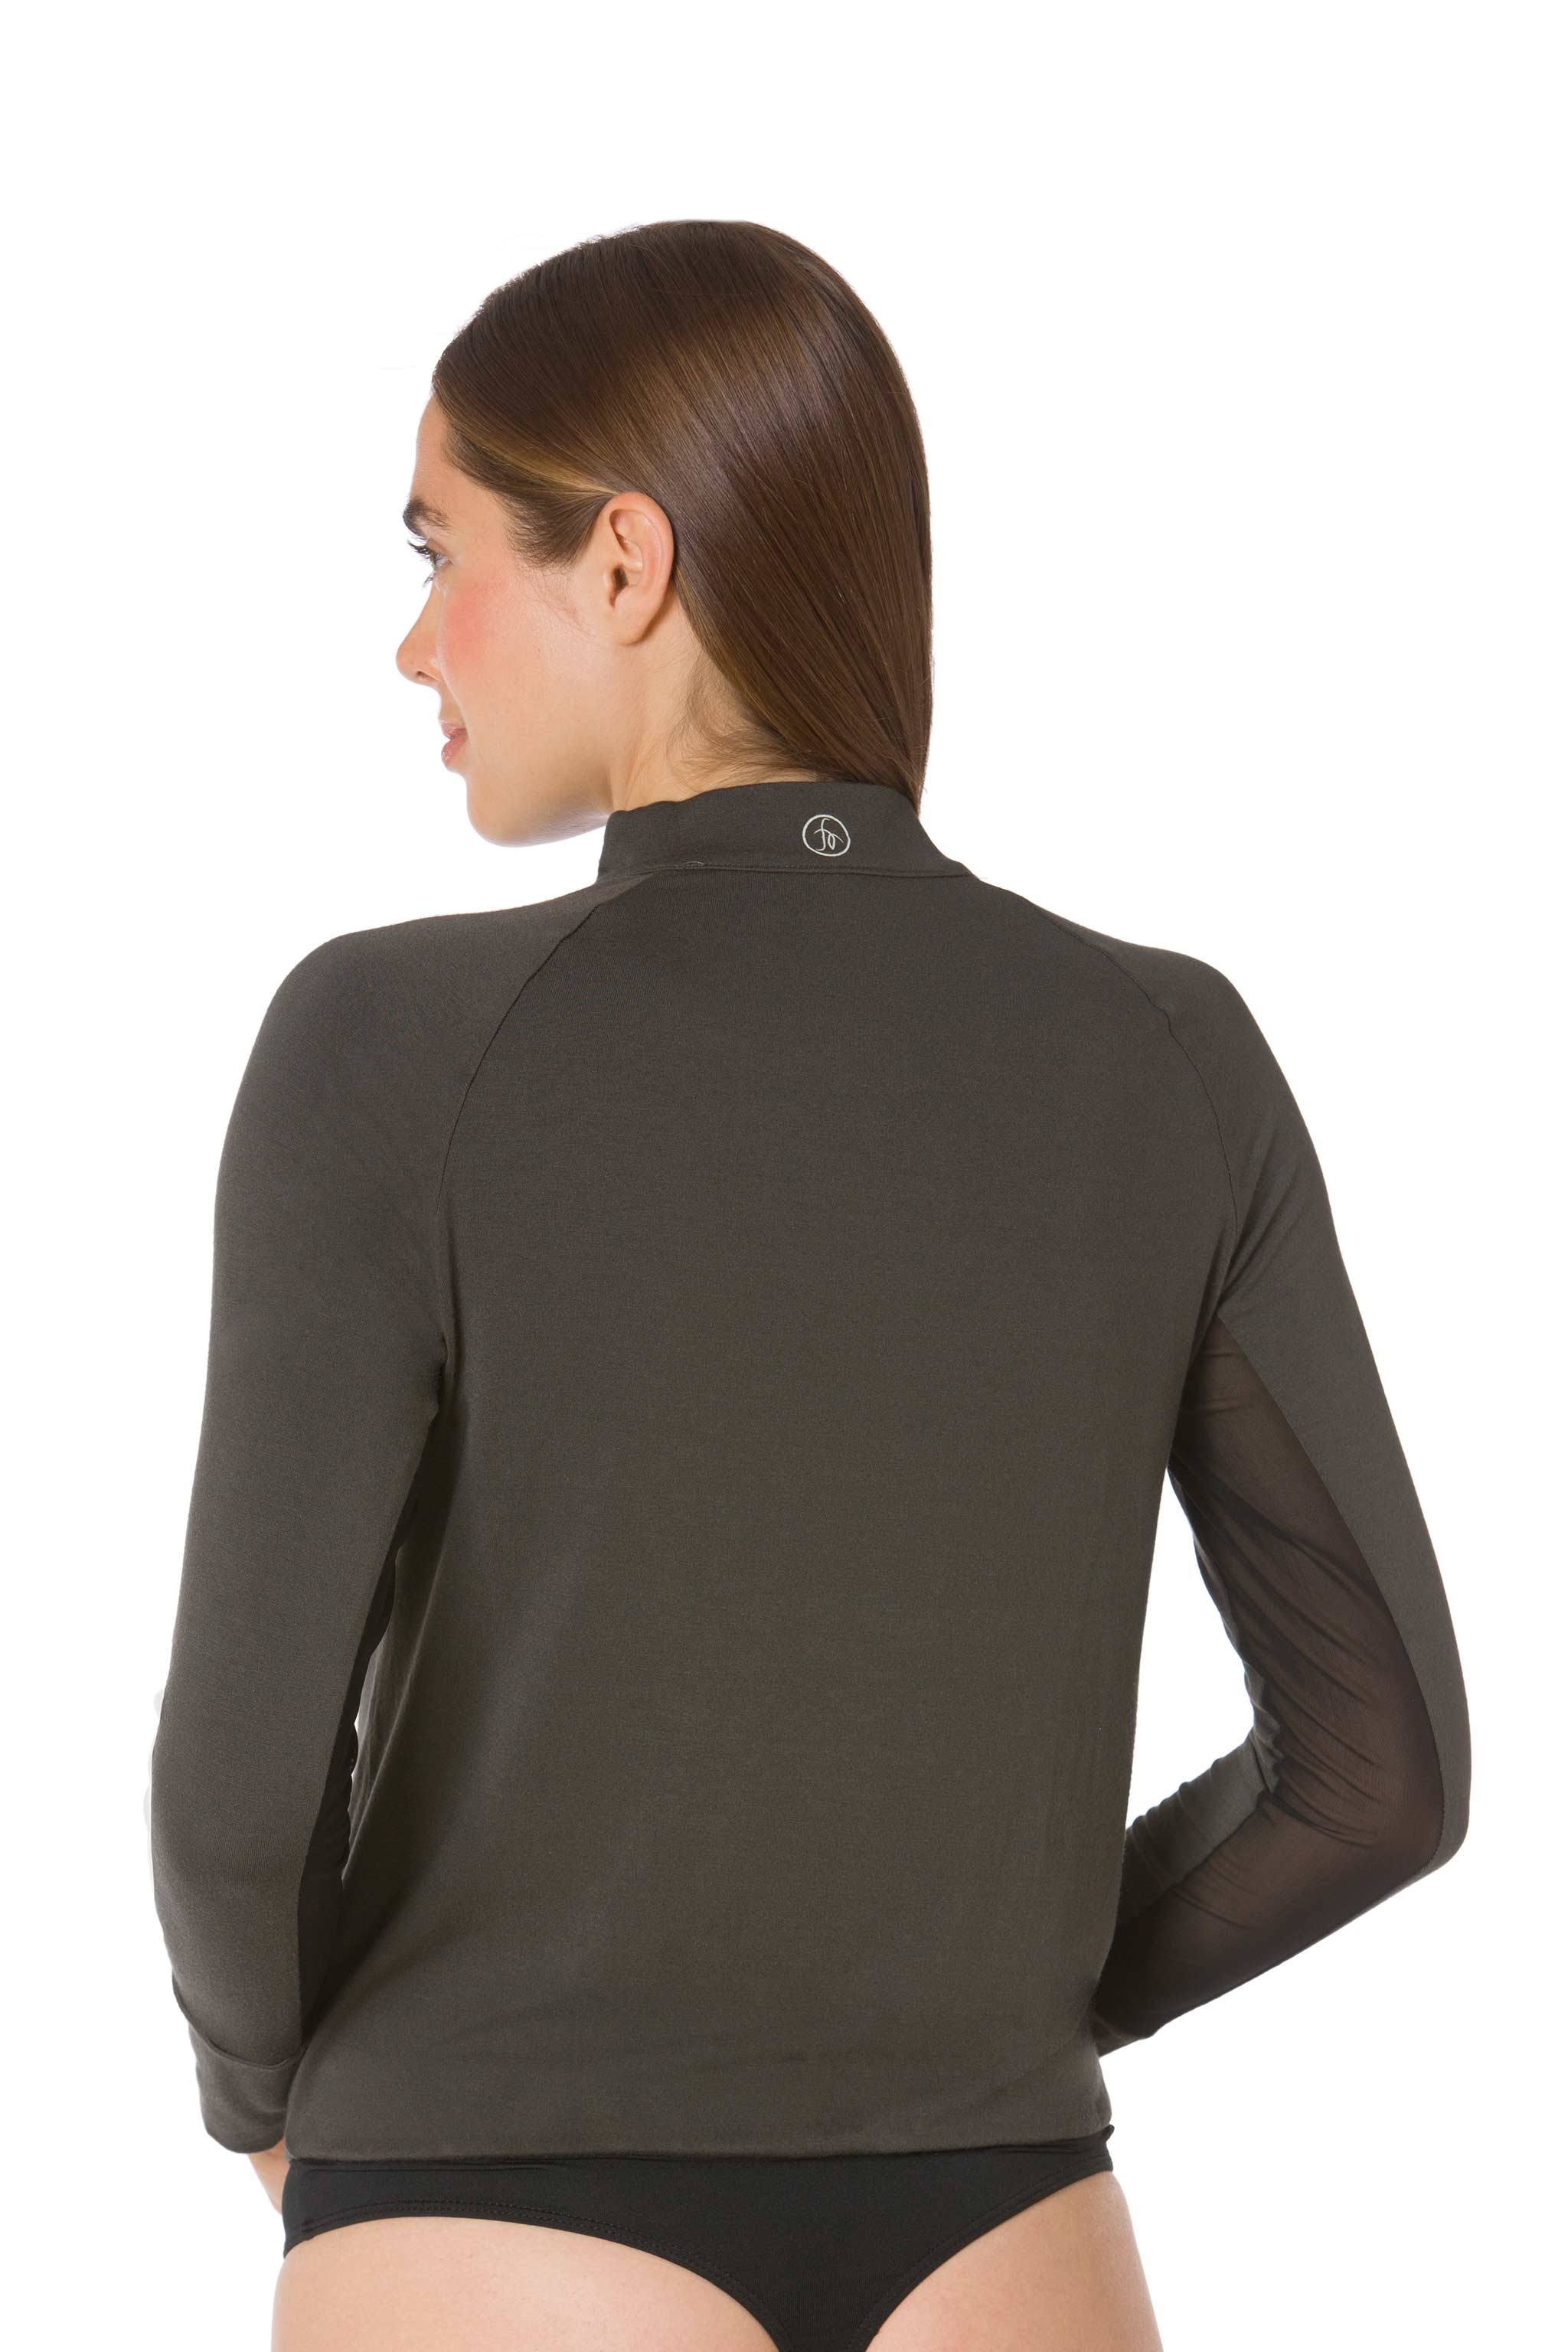 Forest | Black-The Moto Equestrian Bodysuit